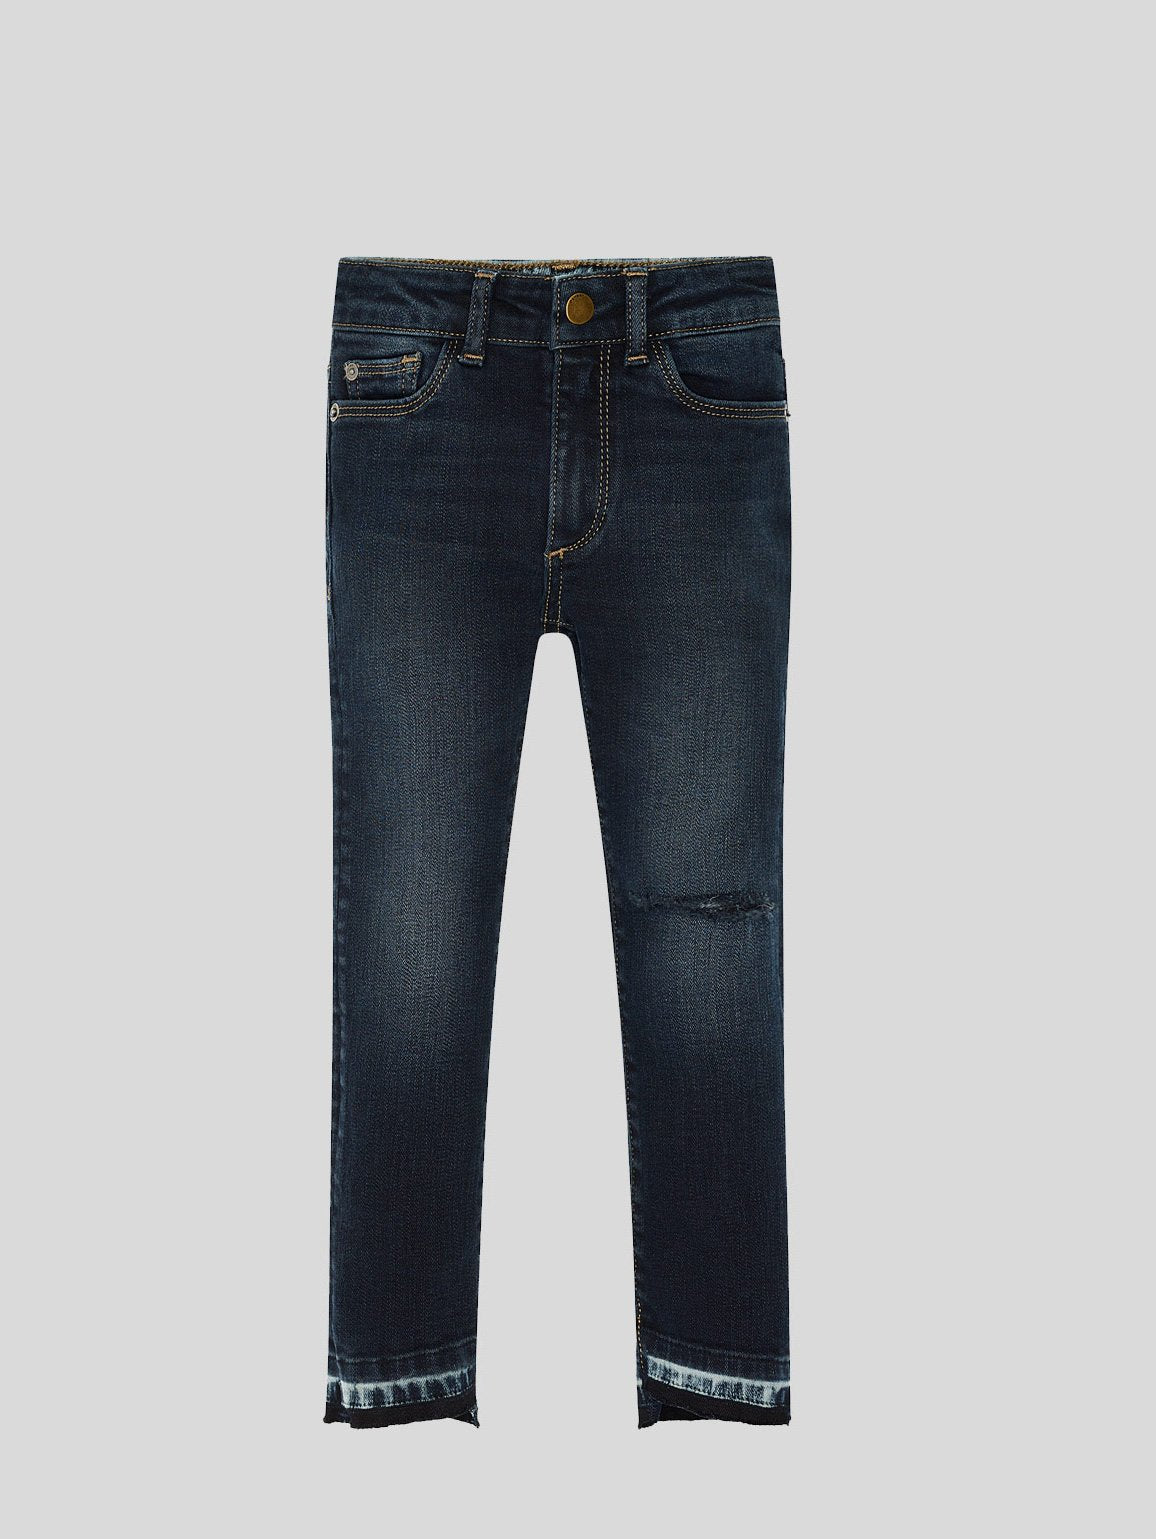 Chloe Skinny | Grizzly - DL1961